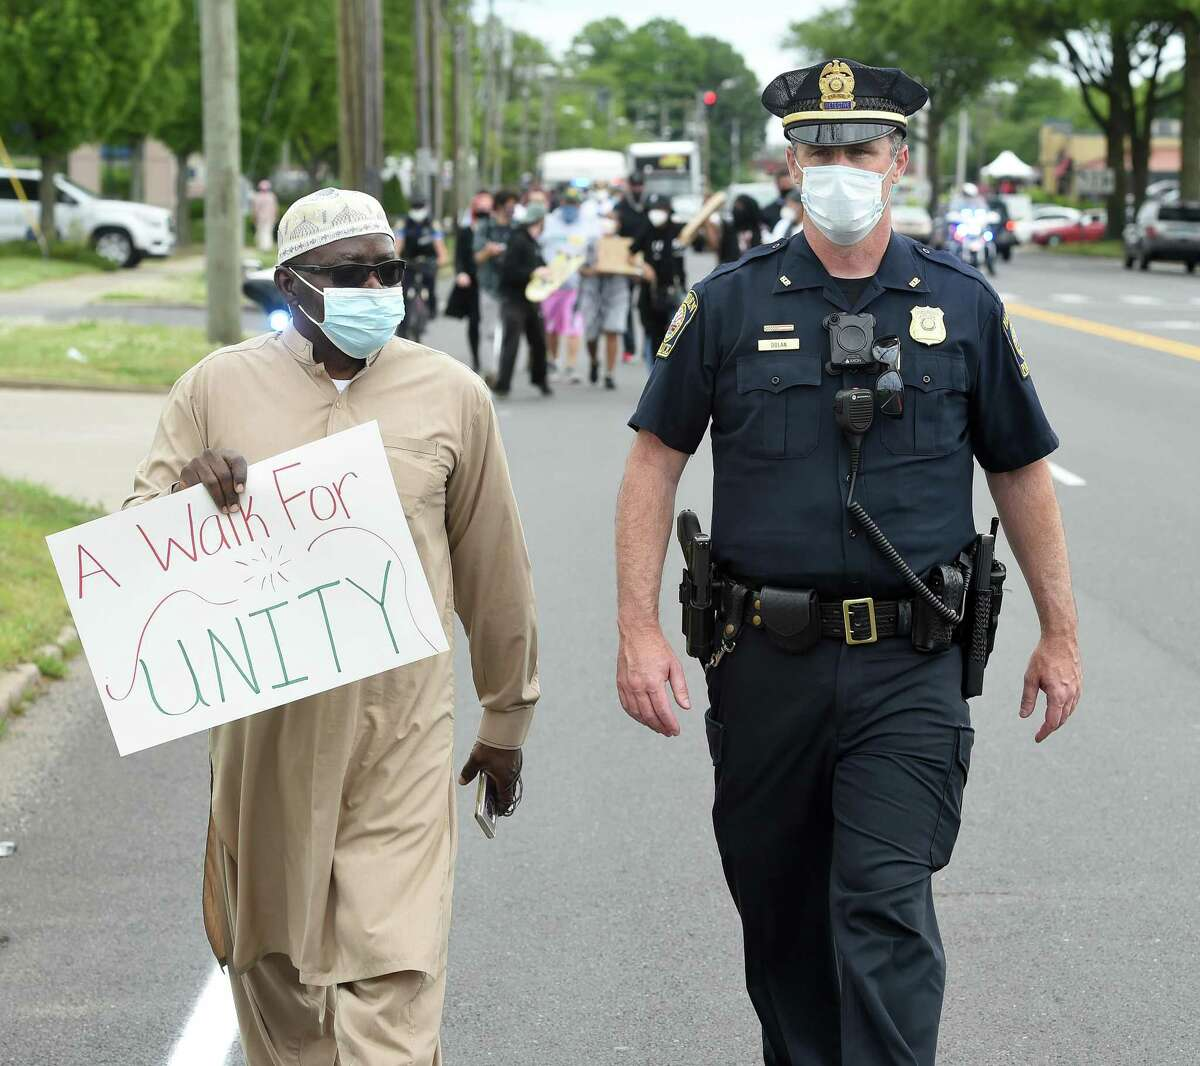 Caleb Rashids (left) of Hamden walks with Hamden Police Detective Sean Dolan (right) in a unity march up Dixwell Avenue in Hamden on June 2, 2020 in the aftermath of the George Floyd death at the hands of Minneapolis Police.